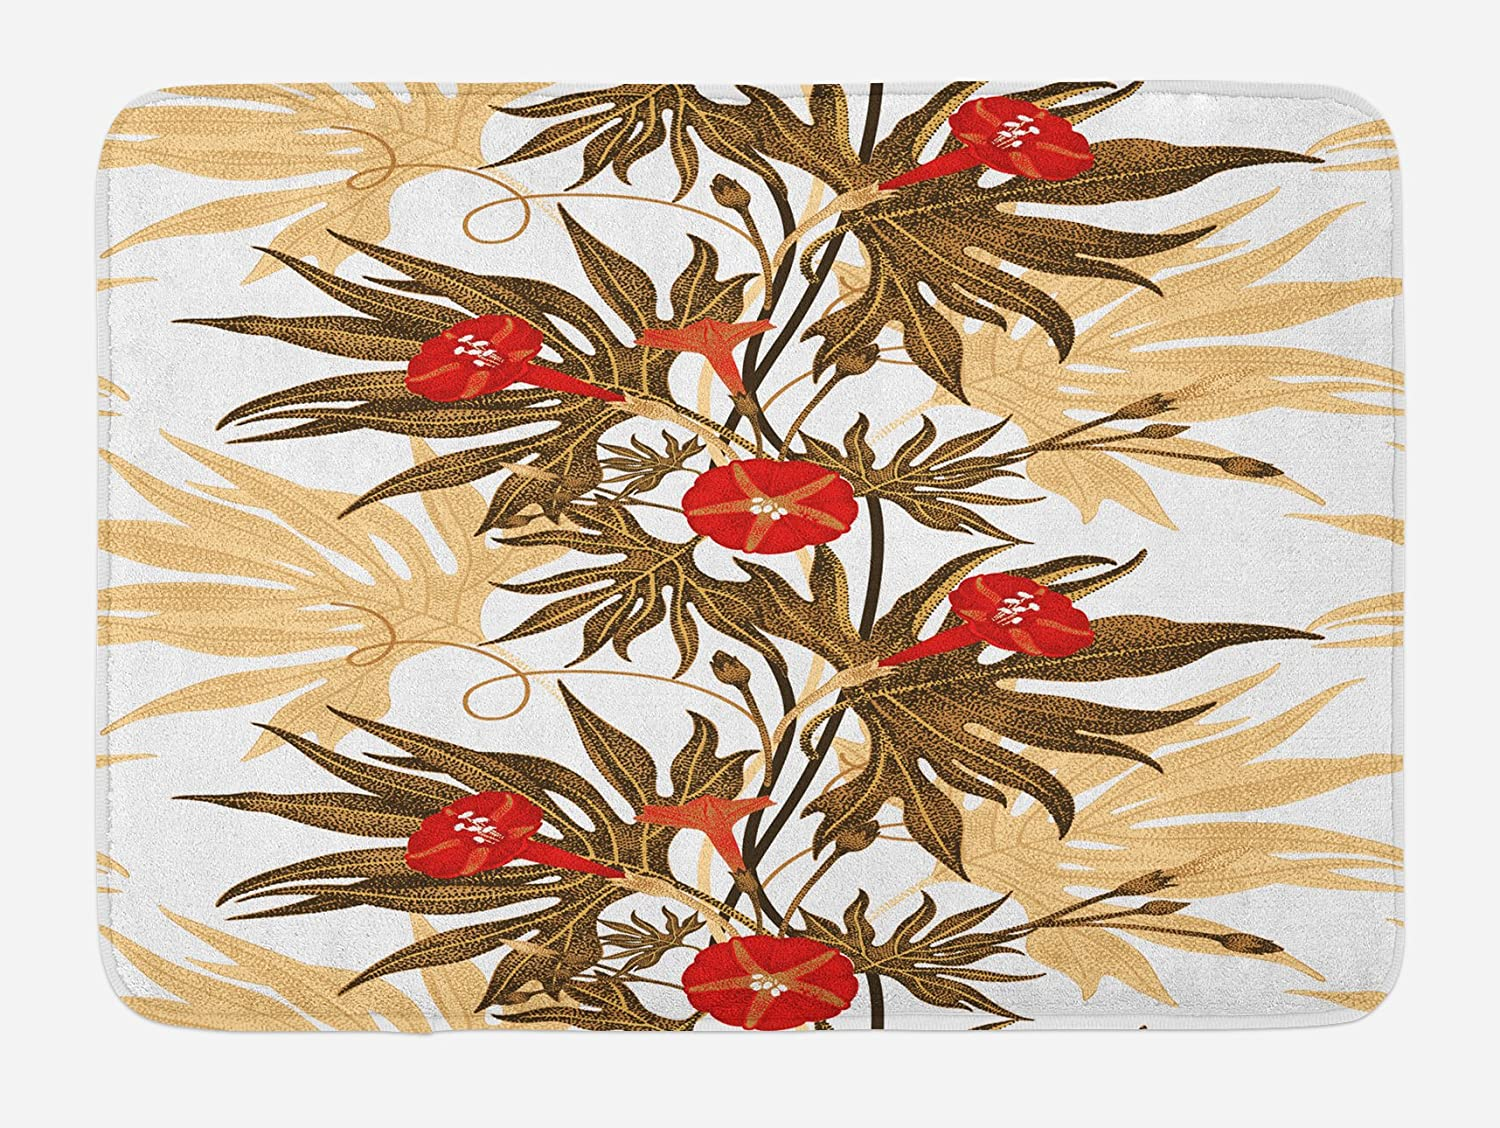 Ambesonne Floral Bath Mat, Exotic Climbing Plant Ivy Flowers Leaves Vintage Blooms Botanical Artwork, Plush Bathroom Decor Mat with Non Slip Backing, 29.5